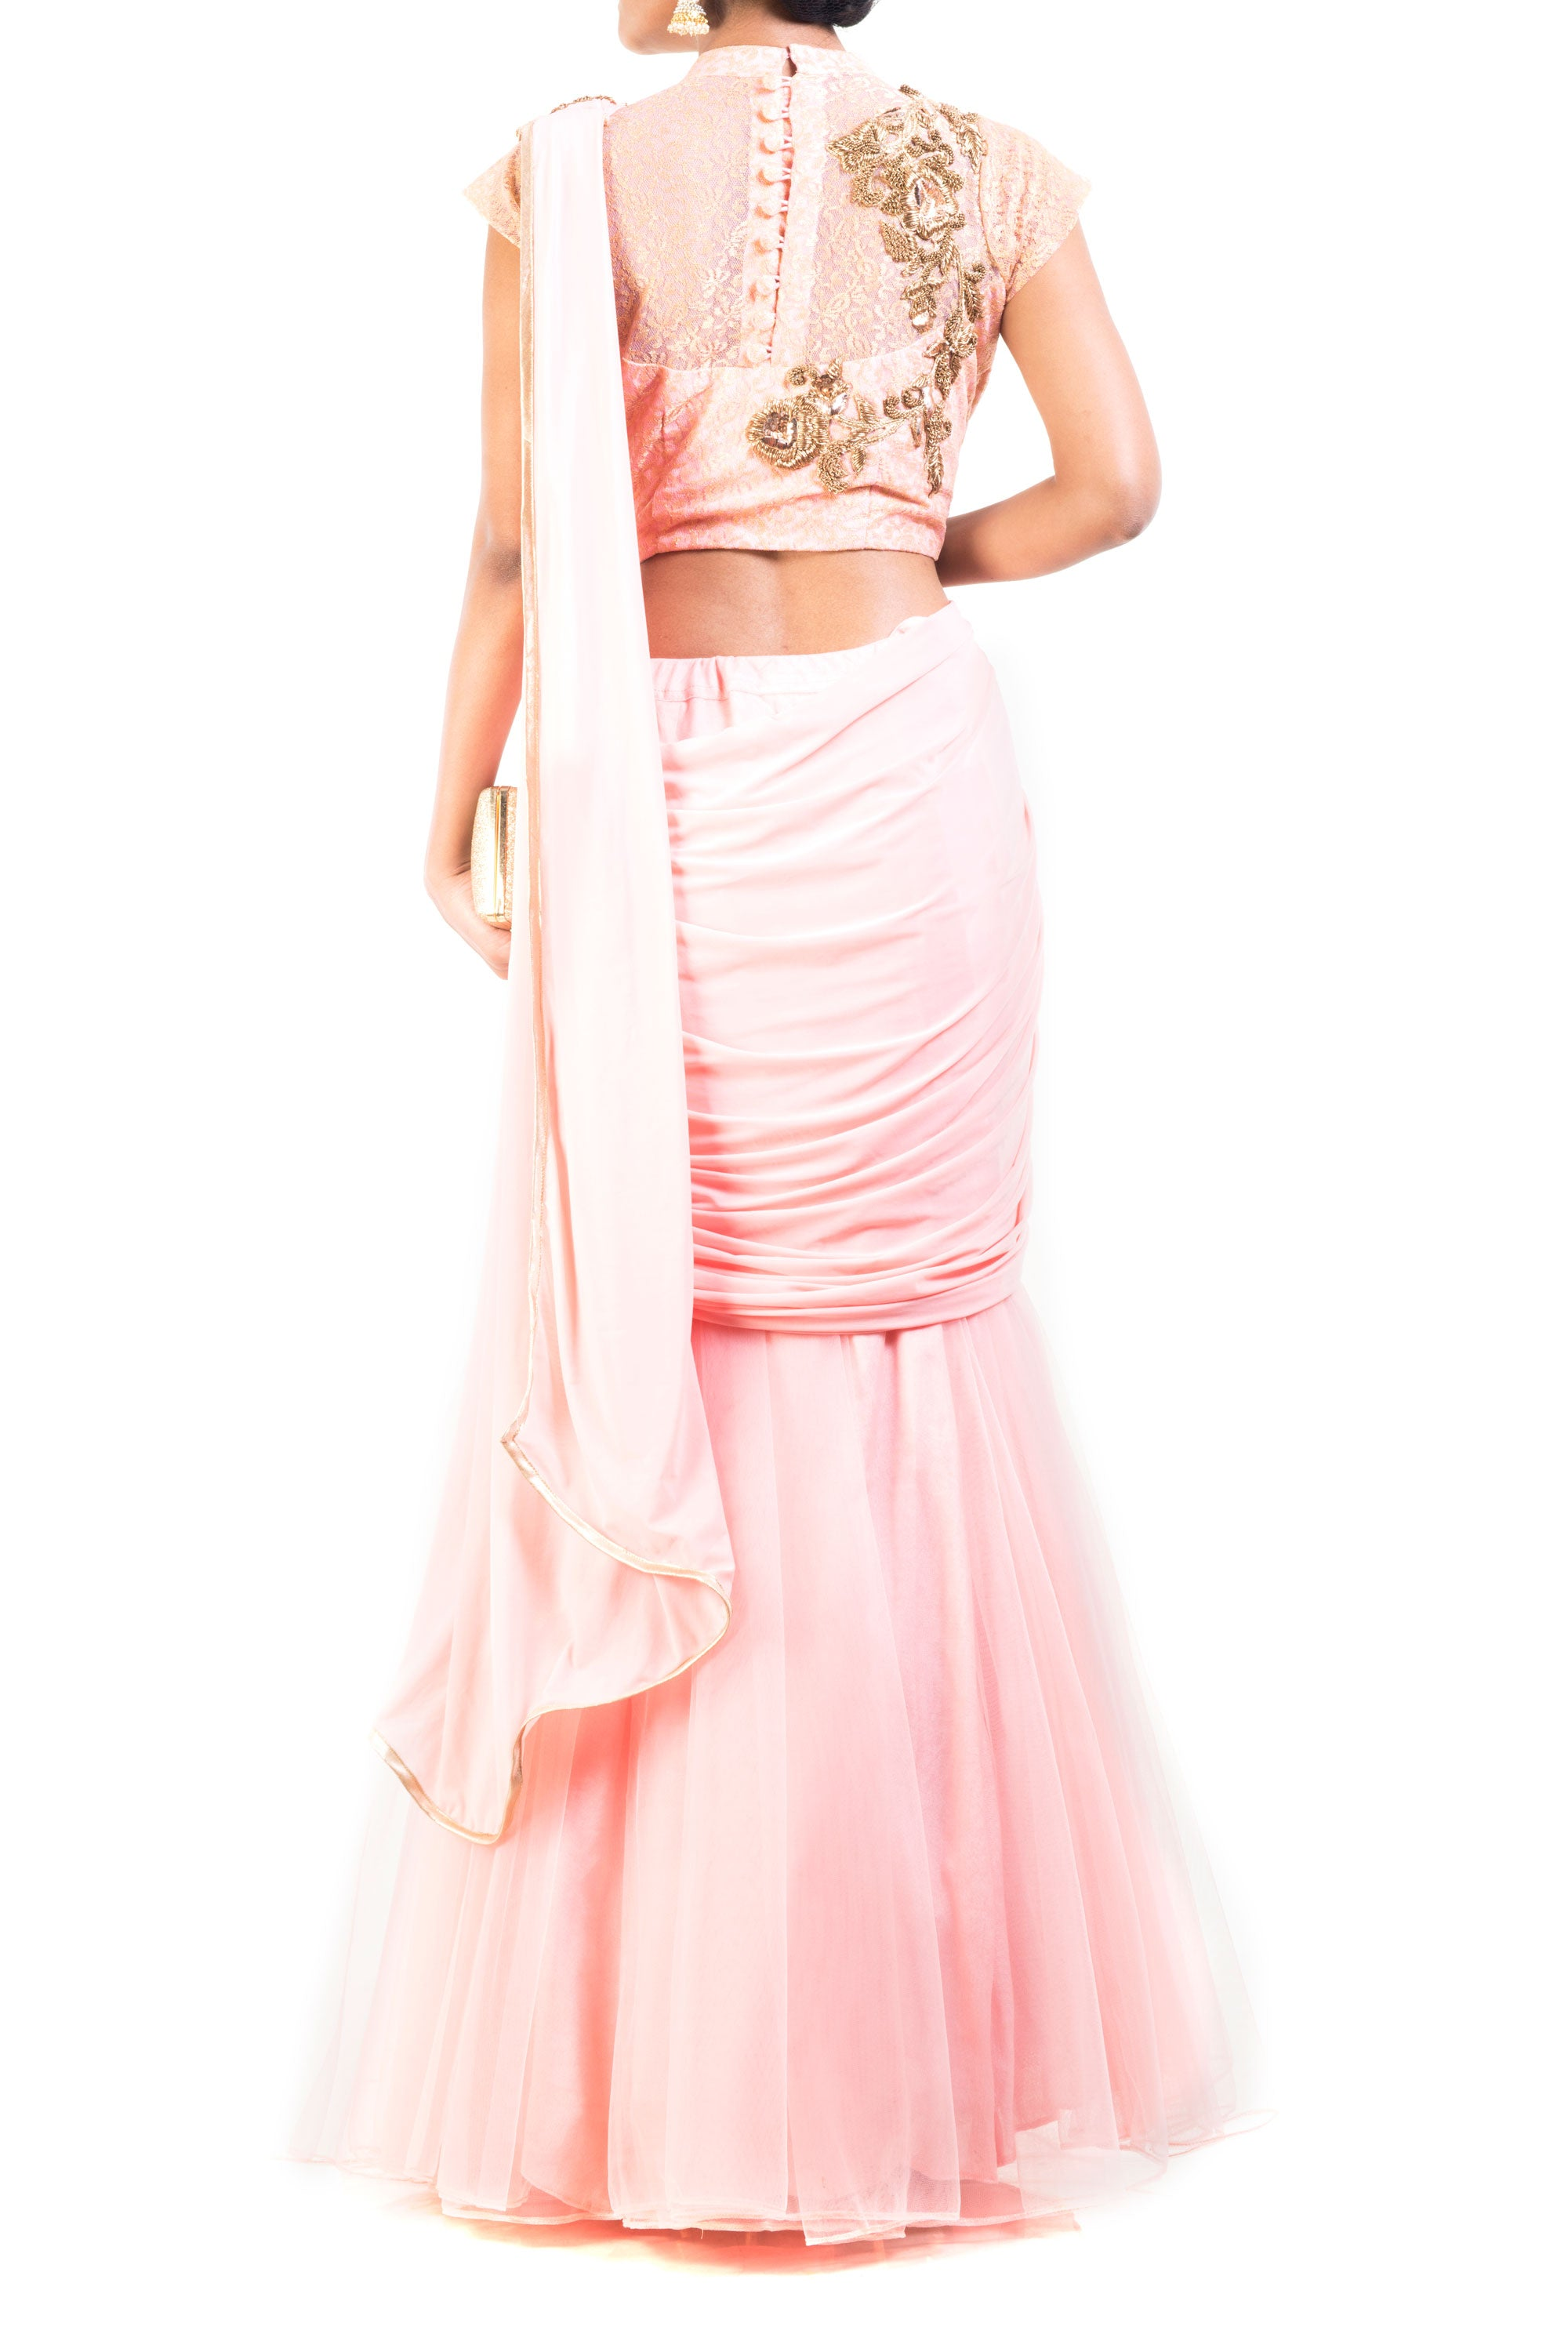 Blush Pink Lehenga Set With Cinderella Lace Back